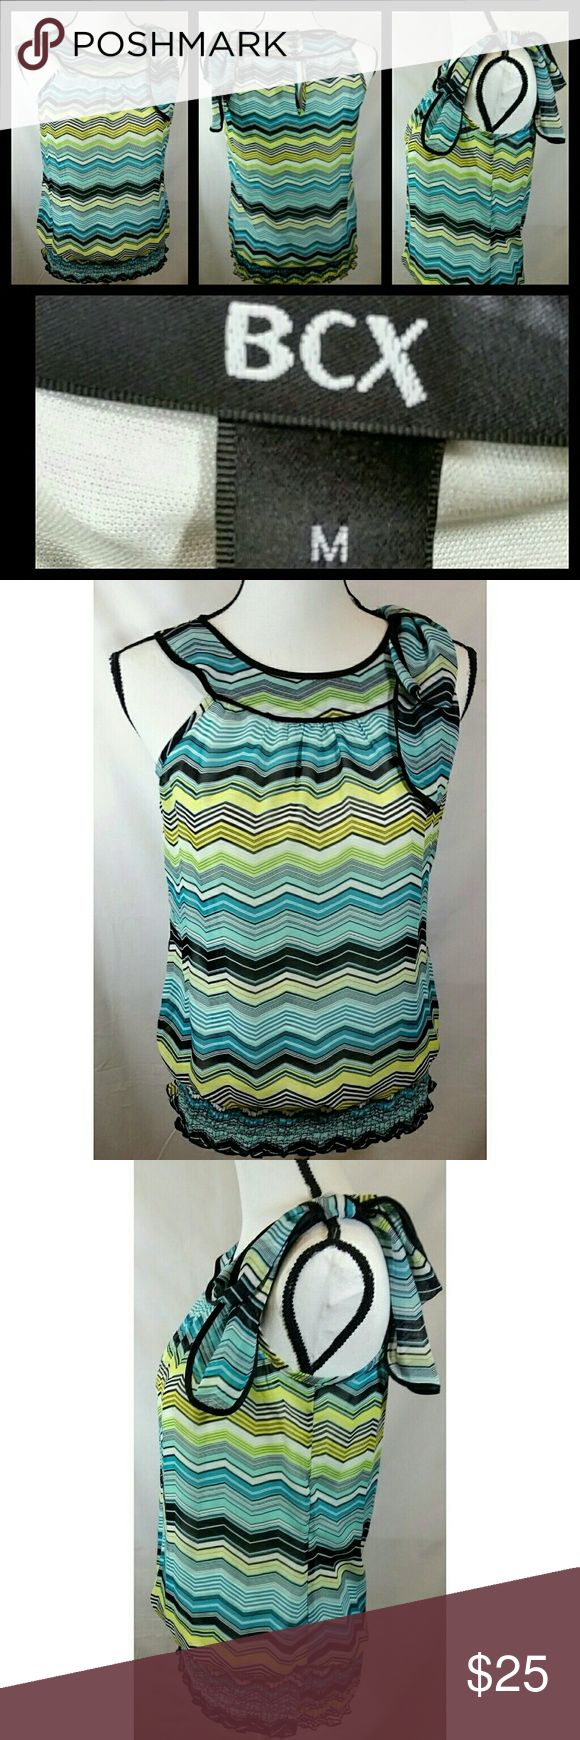 BCX Multicolored Chevron Dress Top Brand: BCX Multicolored Chevron Dress Top  Type of Garment: Women's Dress Top  Specifics: Lined, scoop neck, bow across left shoulder, sleeveless, 3 button back collar, chevron design, 3 inch elastic band at waist Material: 100% polyester Color: Black, blue, green, yellow white  Size: Medium  Condition: Pre-owned, EUC. Smoke freeenvironment. Measurements: Pit-to-pit: 17 inches Length (Bottom of Collar to Hem): 23 inches Sleeves (Top of Shoulder Seam to…